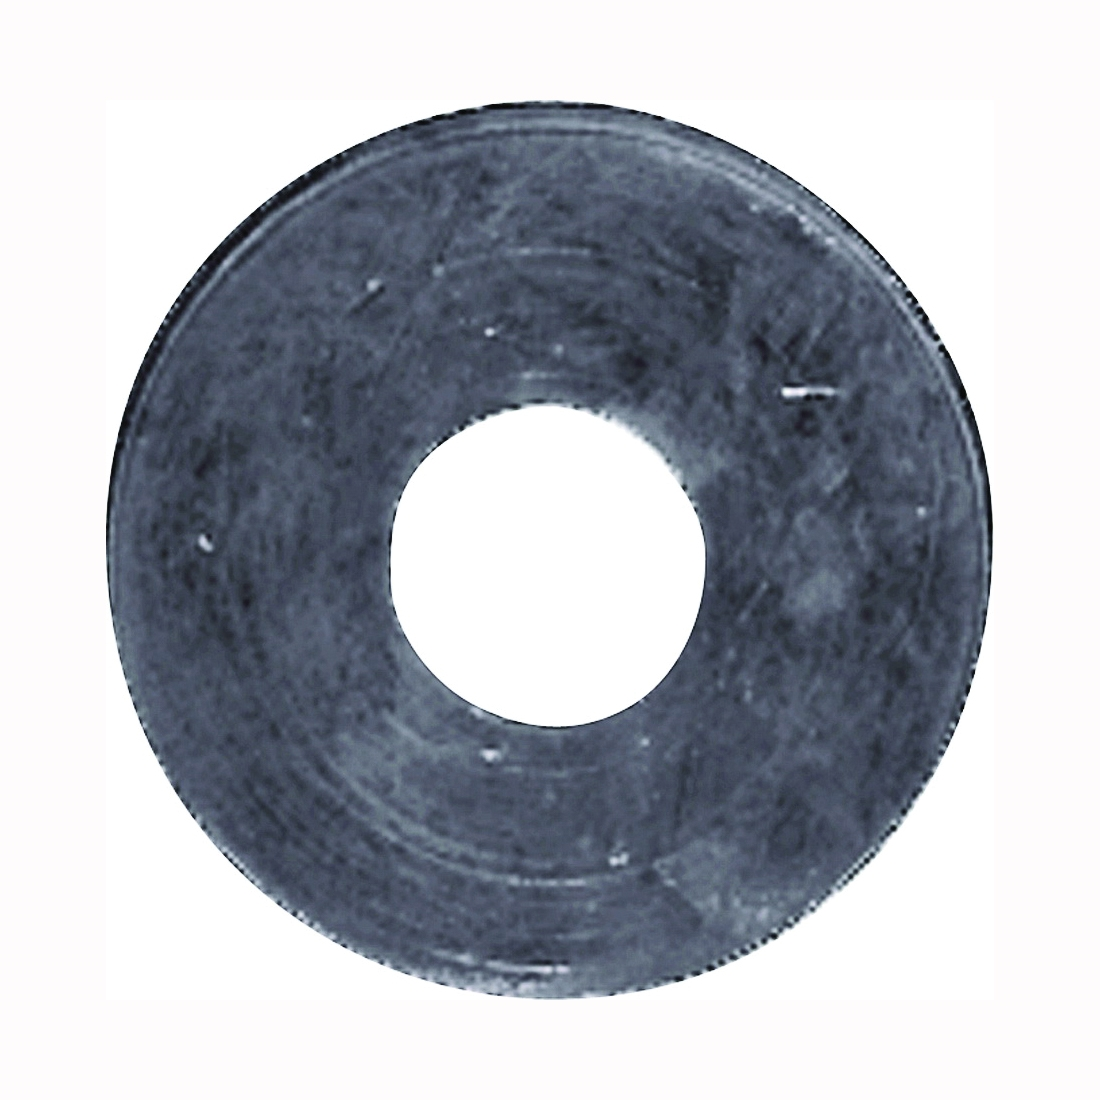 Picture of Danco 35063B Faucet Washer, #0, 17/32 in Dia, Rubber, For: Quick-Opening Style Faucets